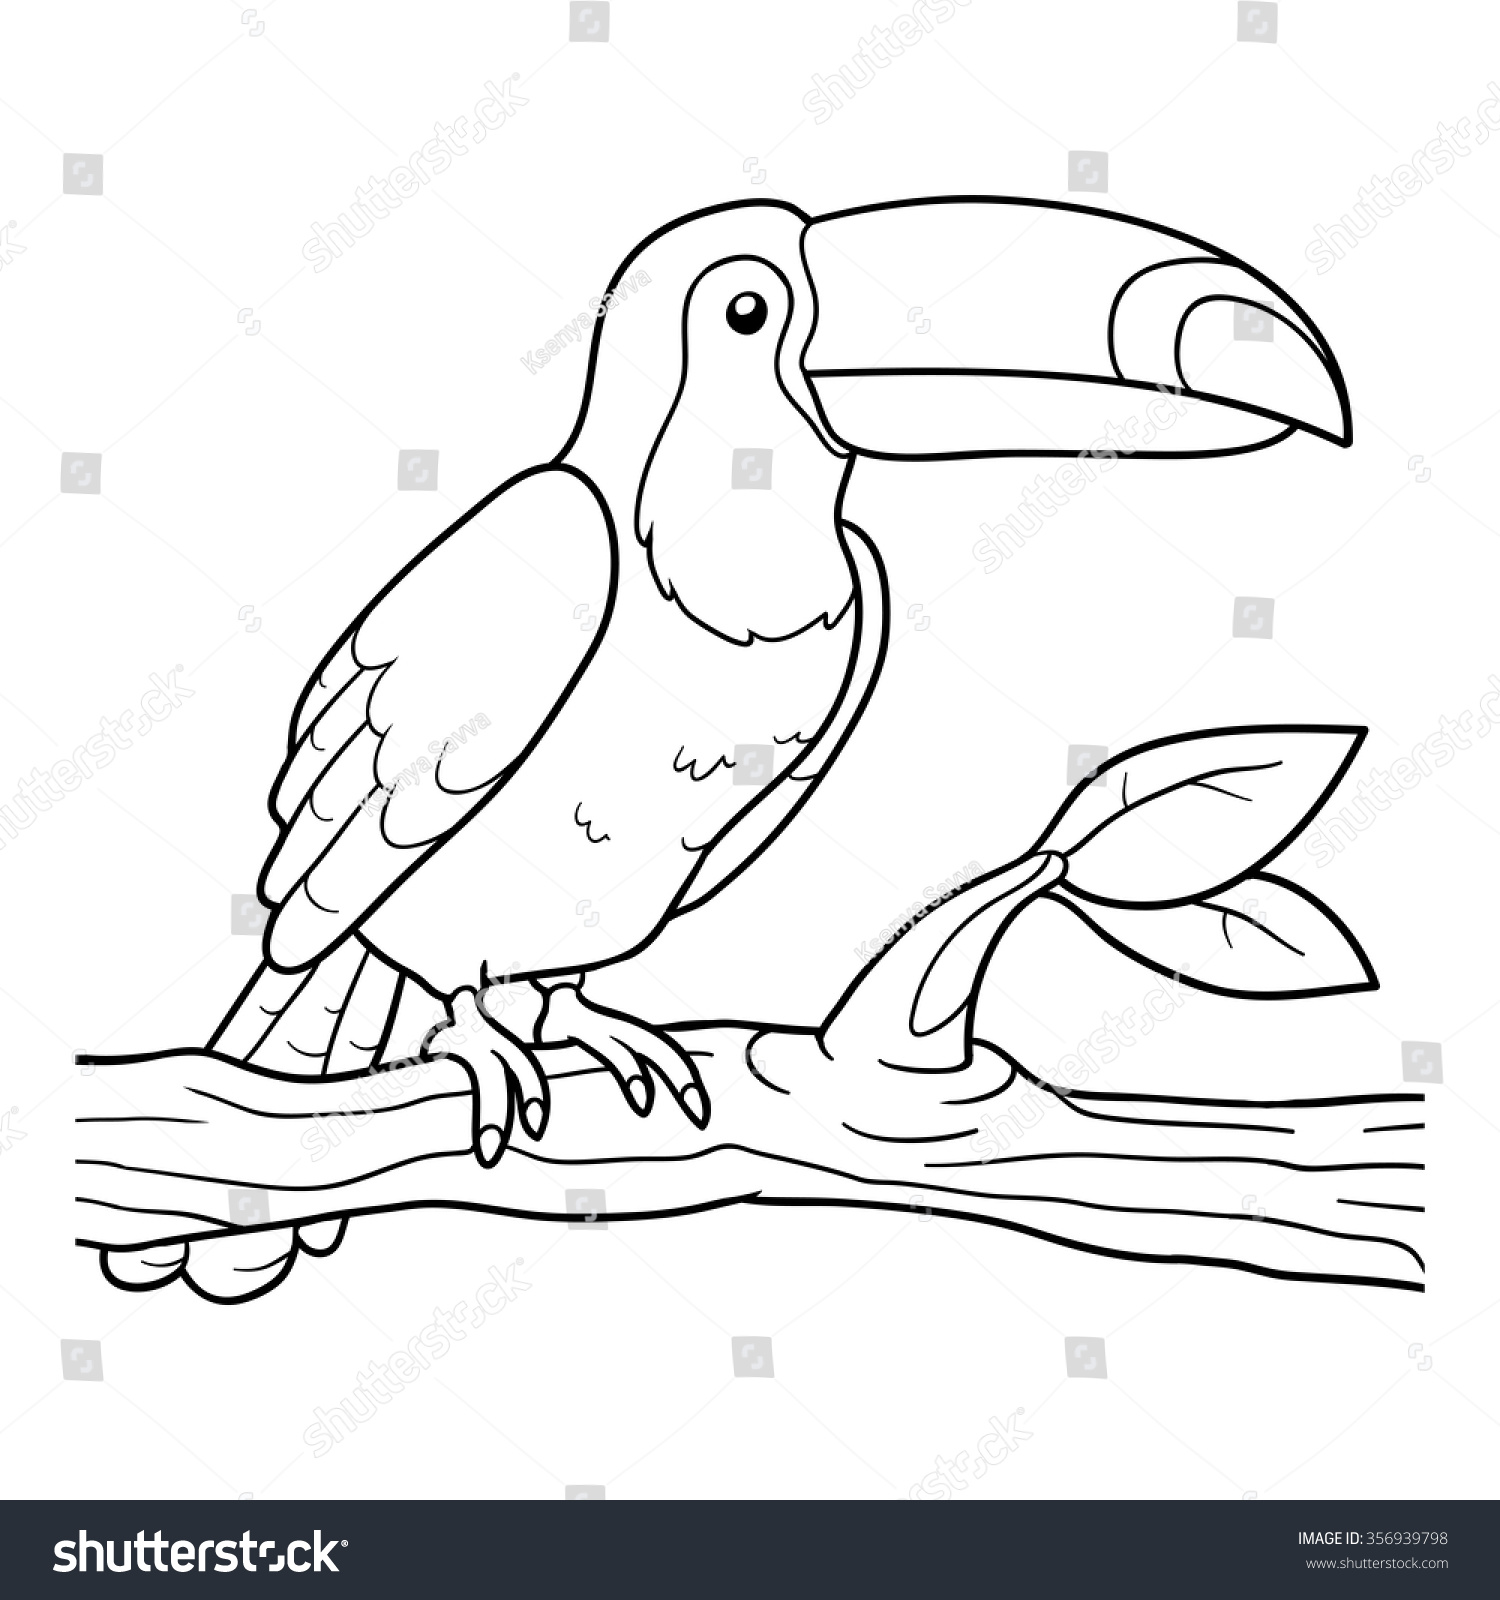 Adult Top Toucan Coloring Pages Images beauty coloring book for children toucan stock vector illustration preview save to a lightbox gallery images